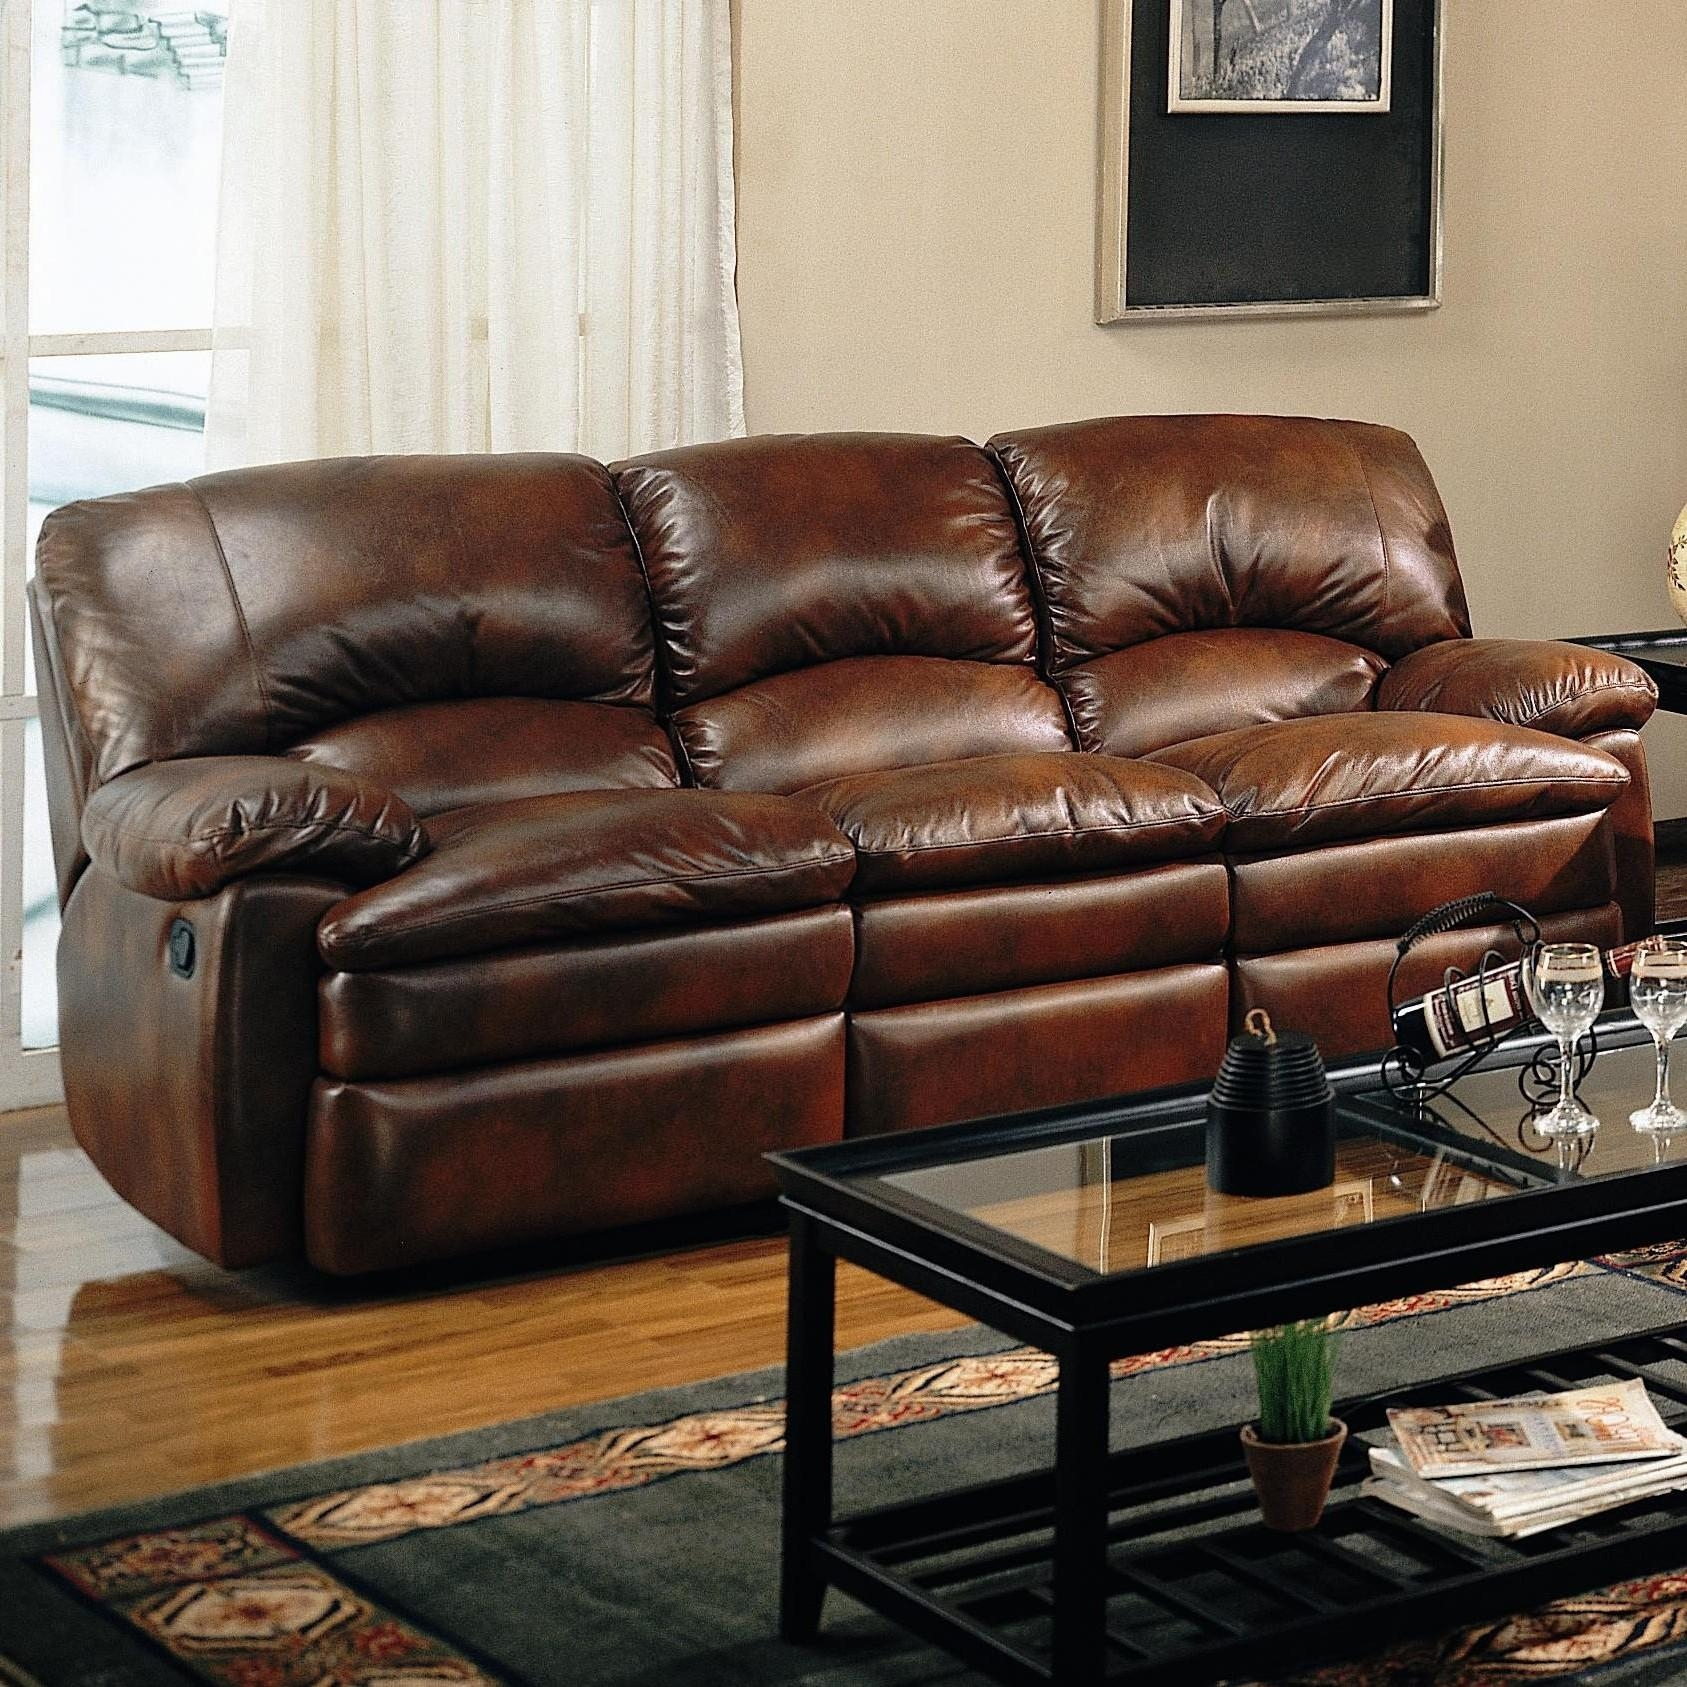 Sofas Center : Costco Power Reclining Sofa Recliner Berkline Sofas With Regard To Berkline Sofa Recliner (Image 17 of 20)